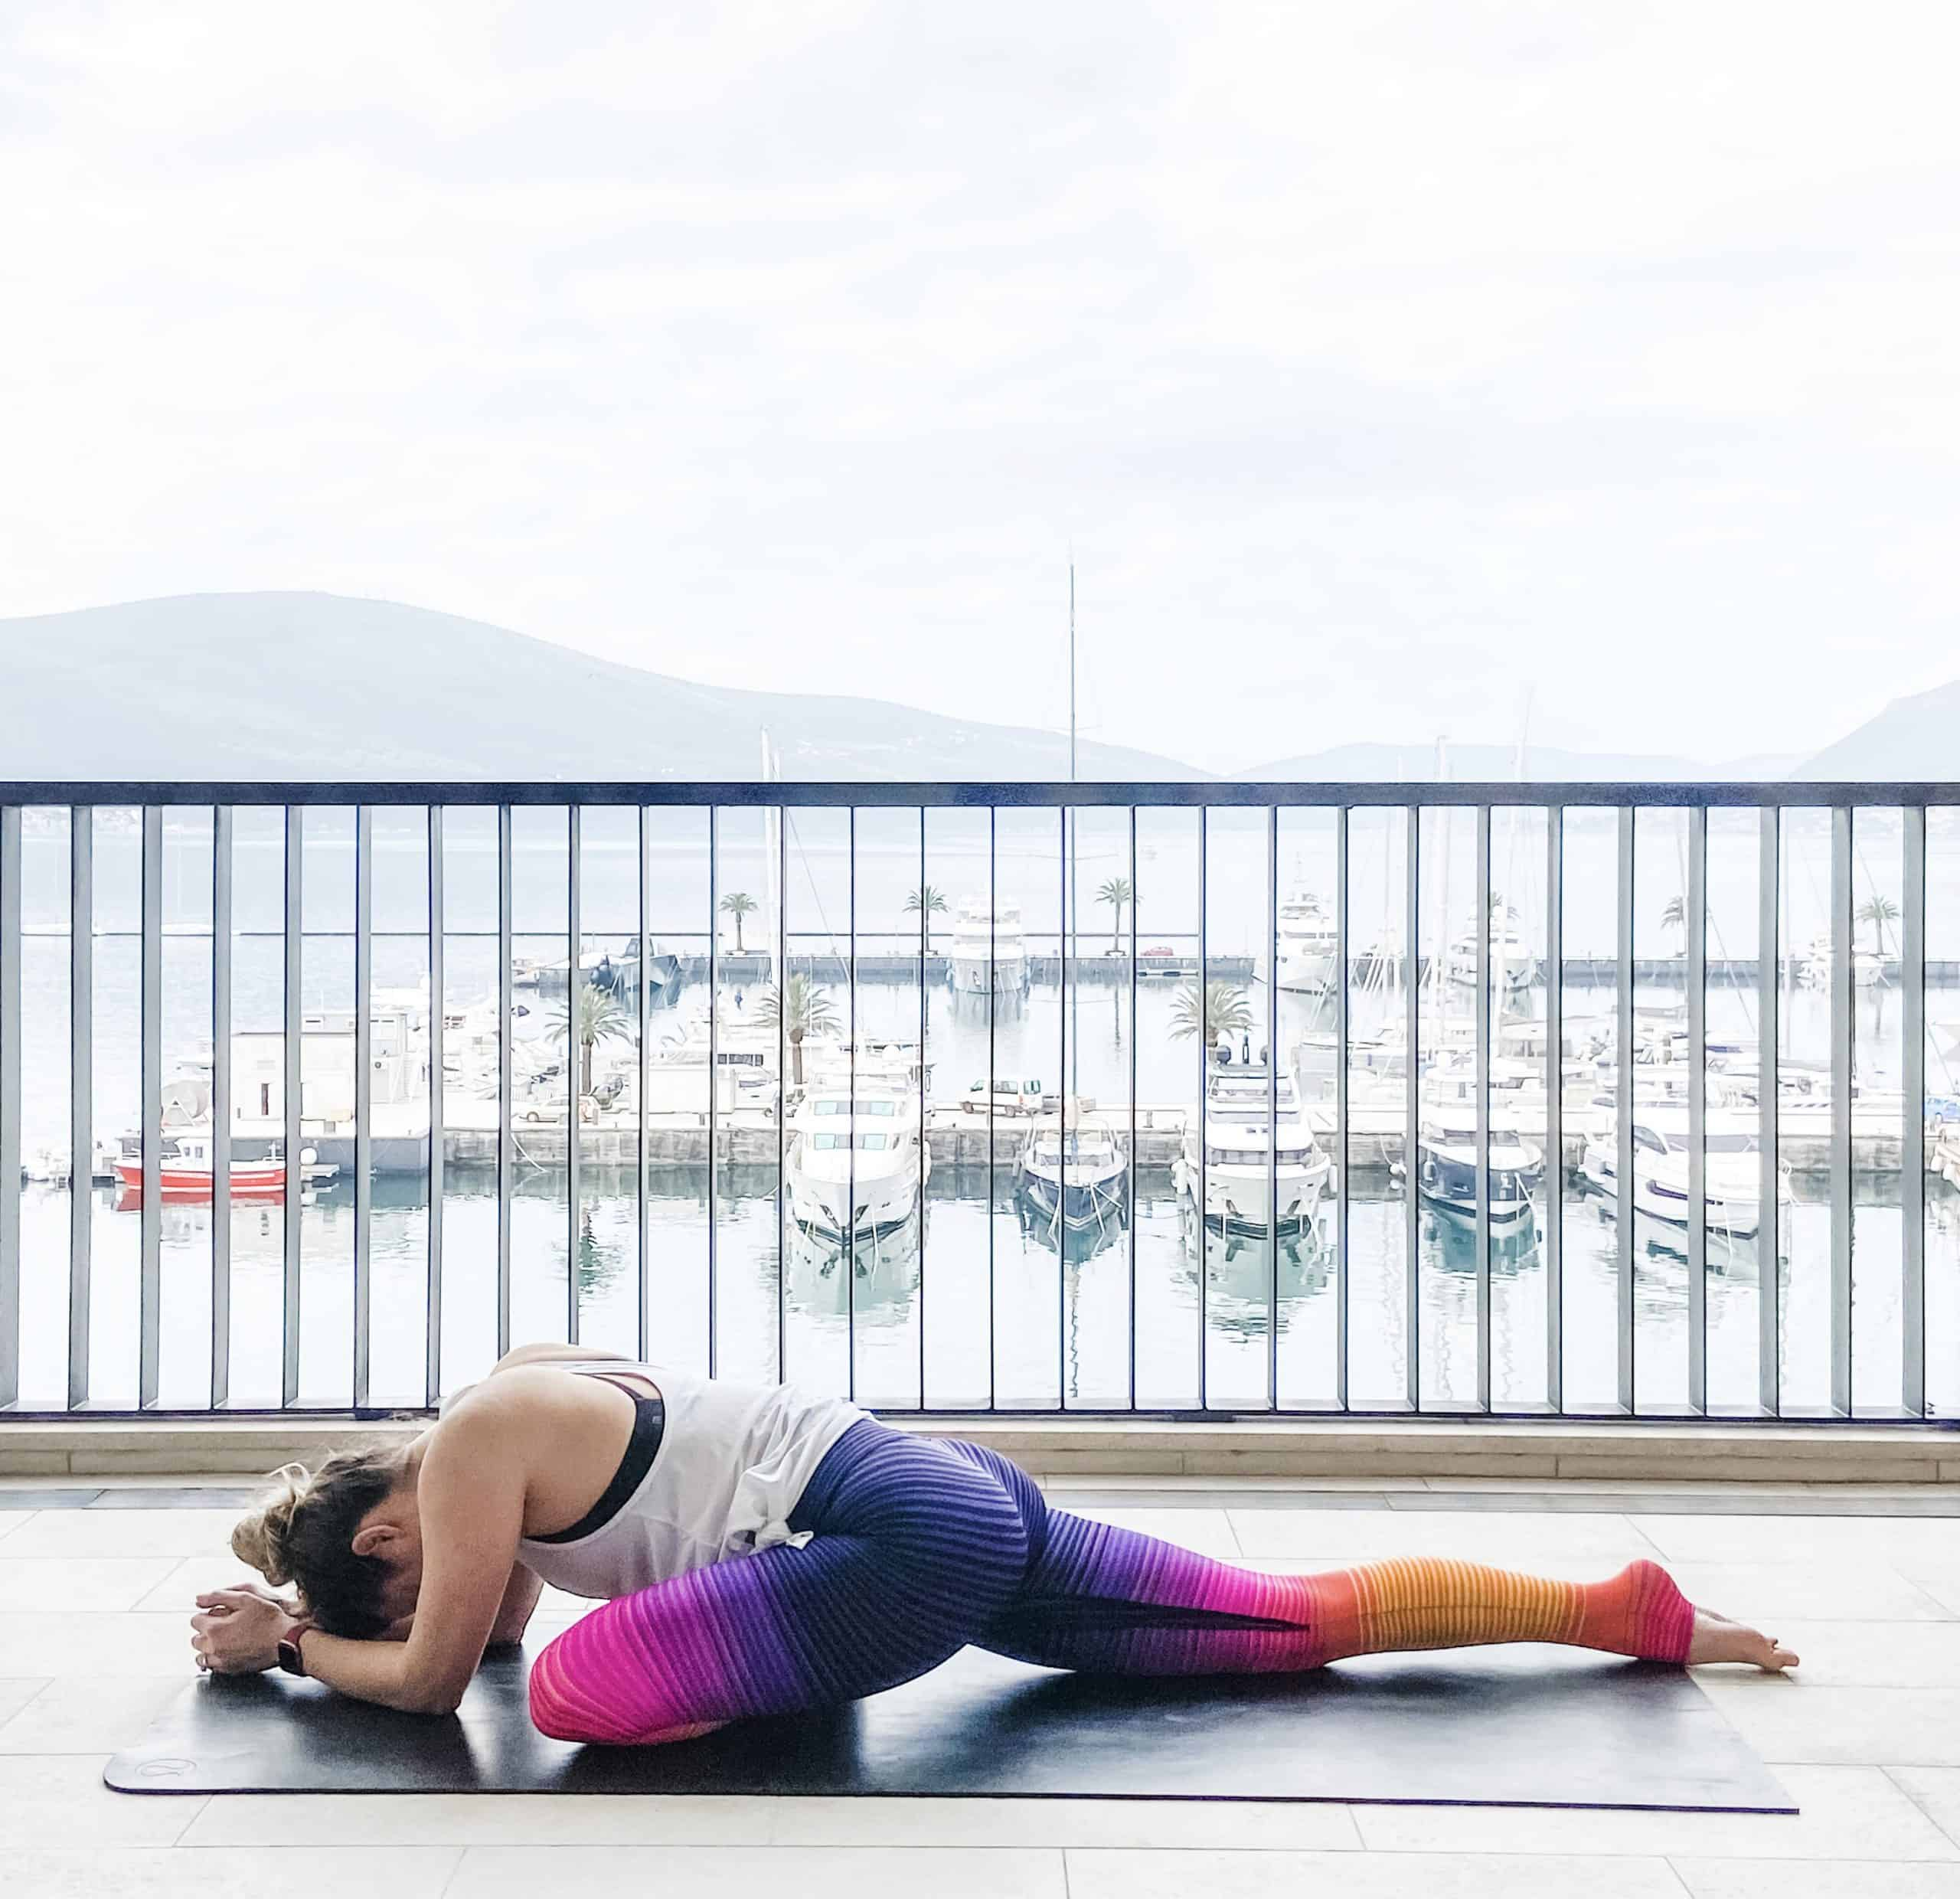 woman on a yoga mat outdoors in pigeon pose